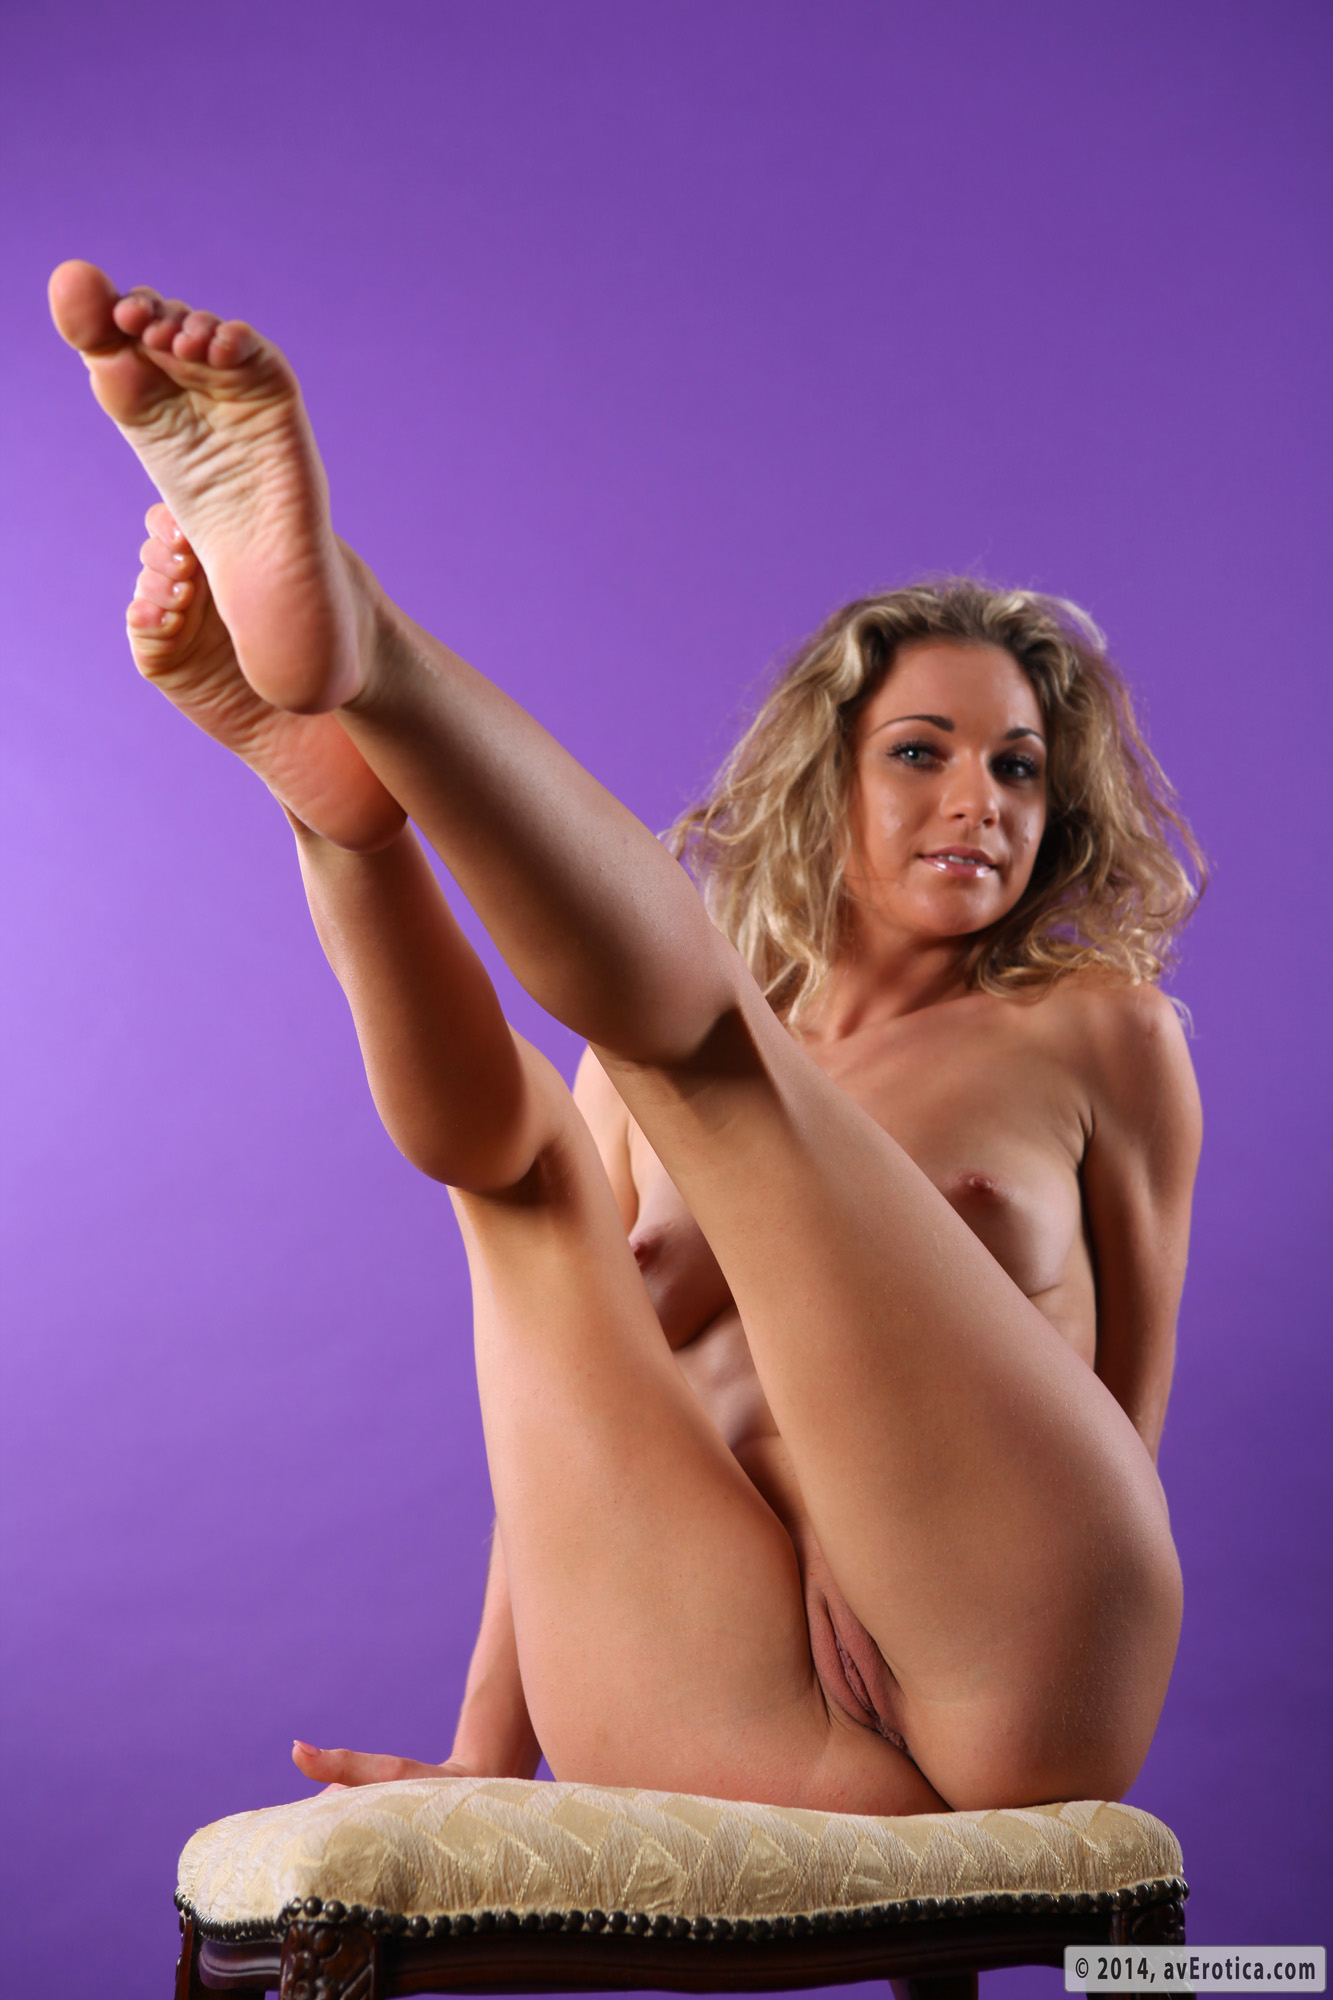 Flexible girlfriend shows naked vagina